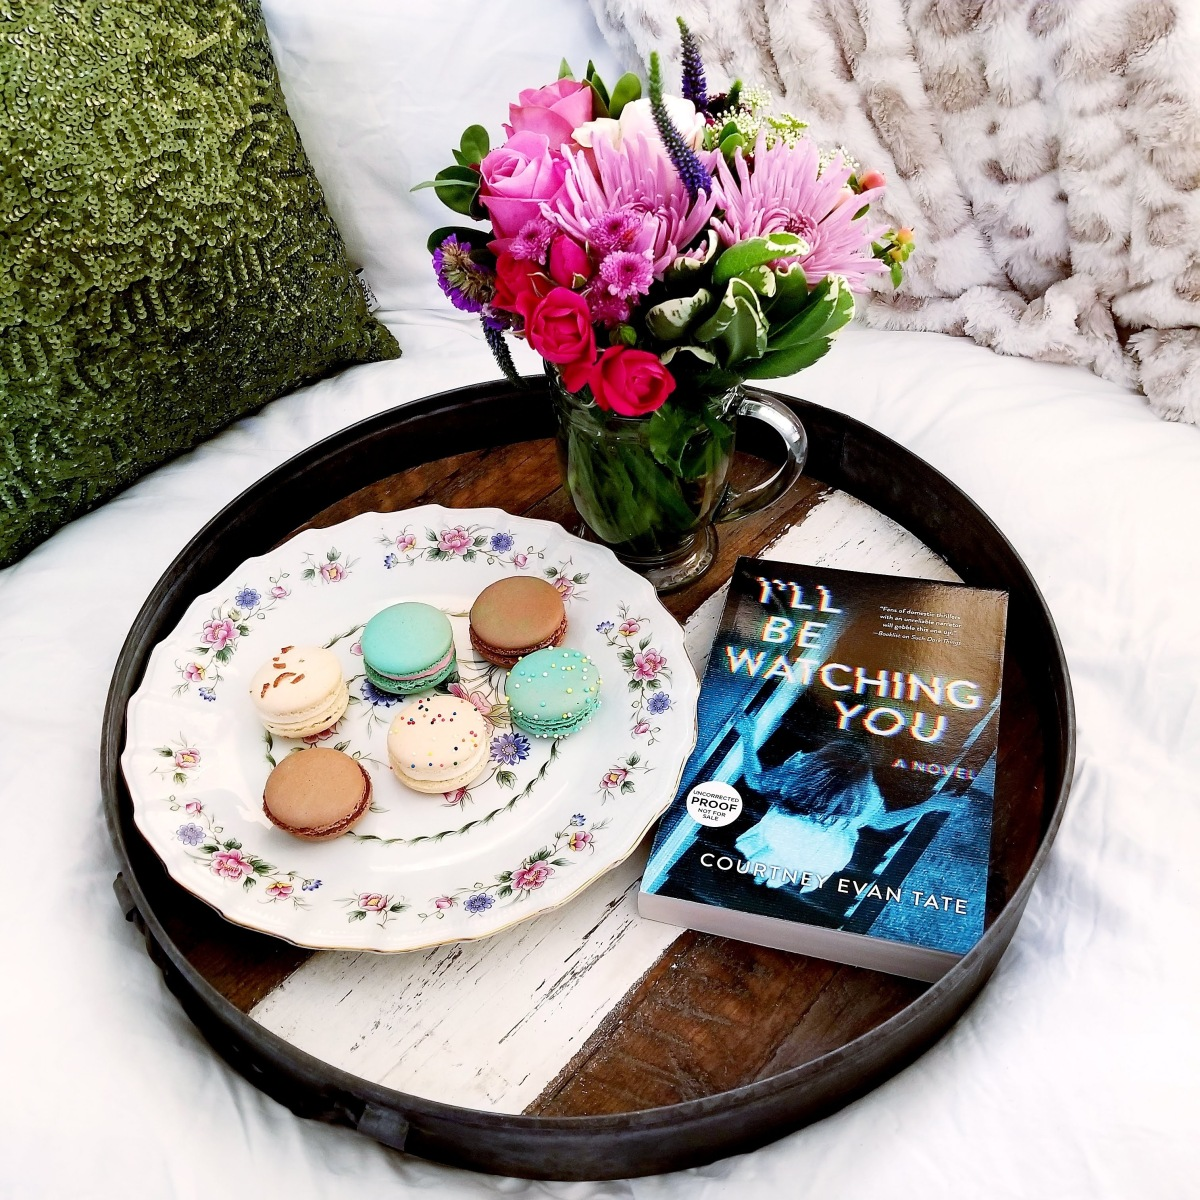 I'll Be Watching You by Courtney Evan Tate #bookreview #tarheelreader #thrillbewatching @court_writes @harlequinbooks #mira @tlcbooktours #illbewatchingyou #blogtour